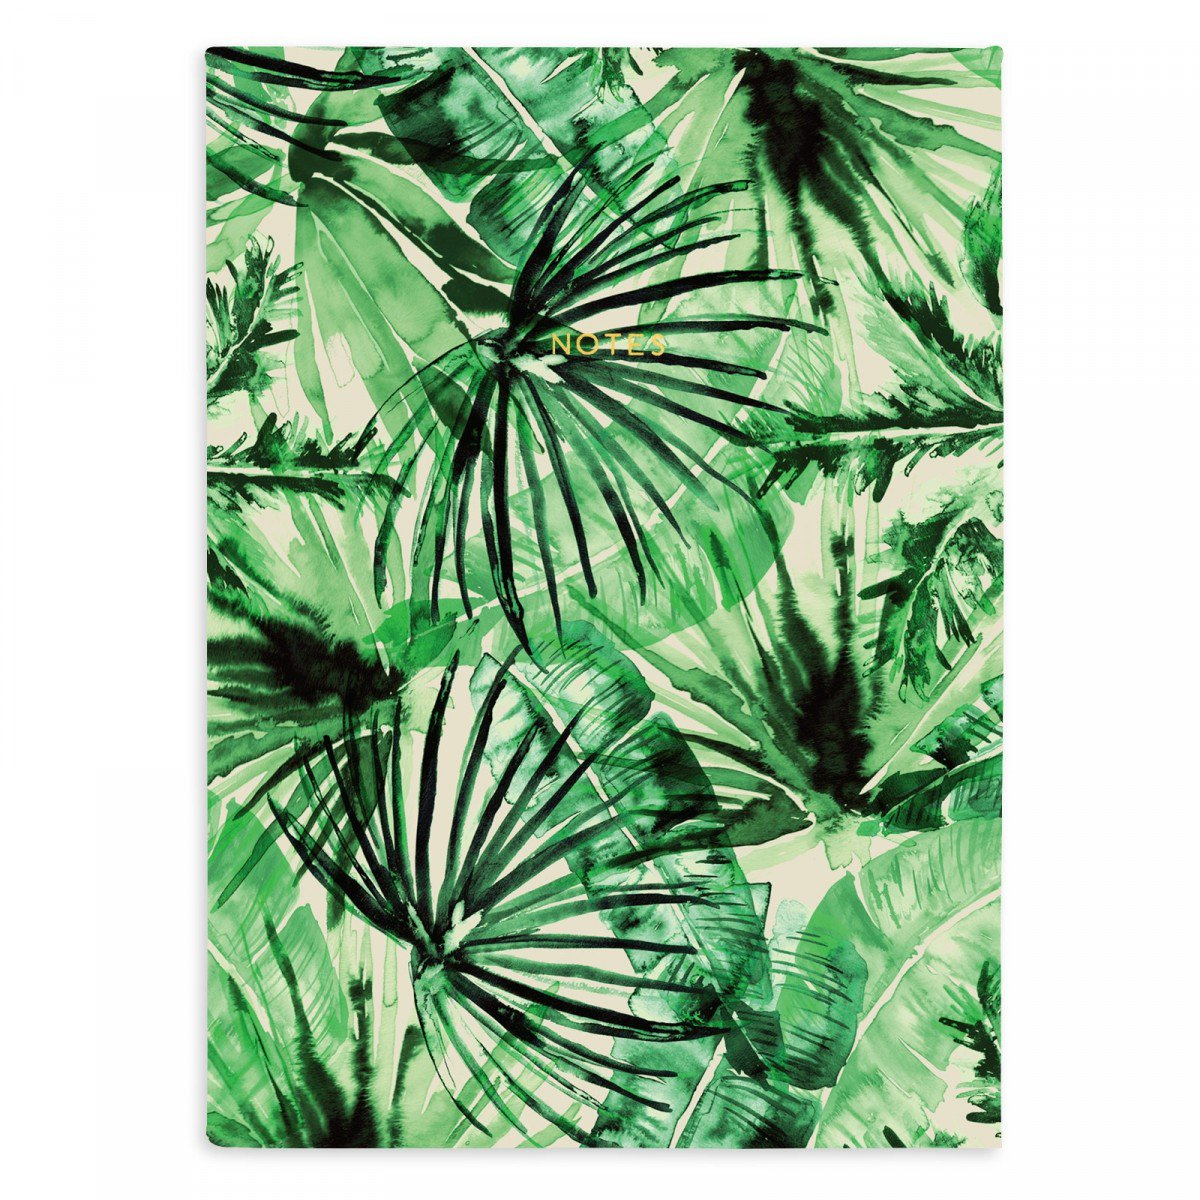 uous-nbl-003-a5_expressive_palms_notebook.jpg